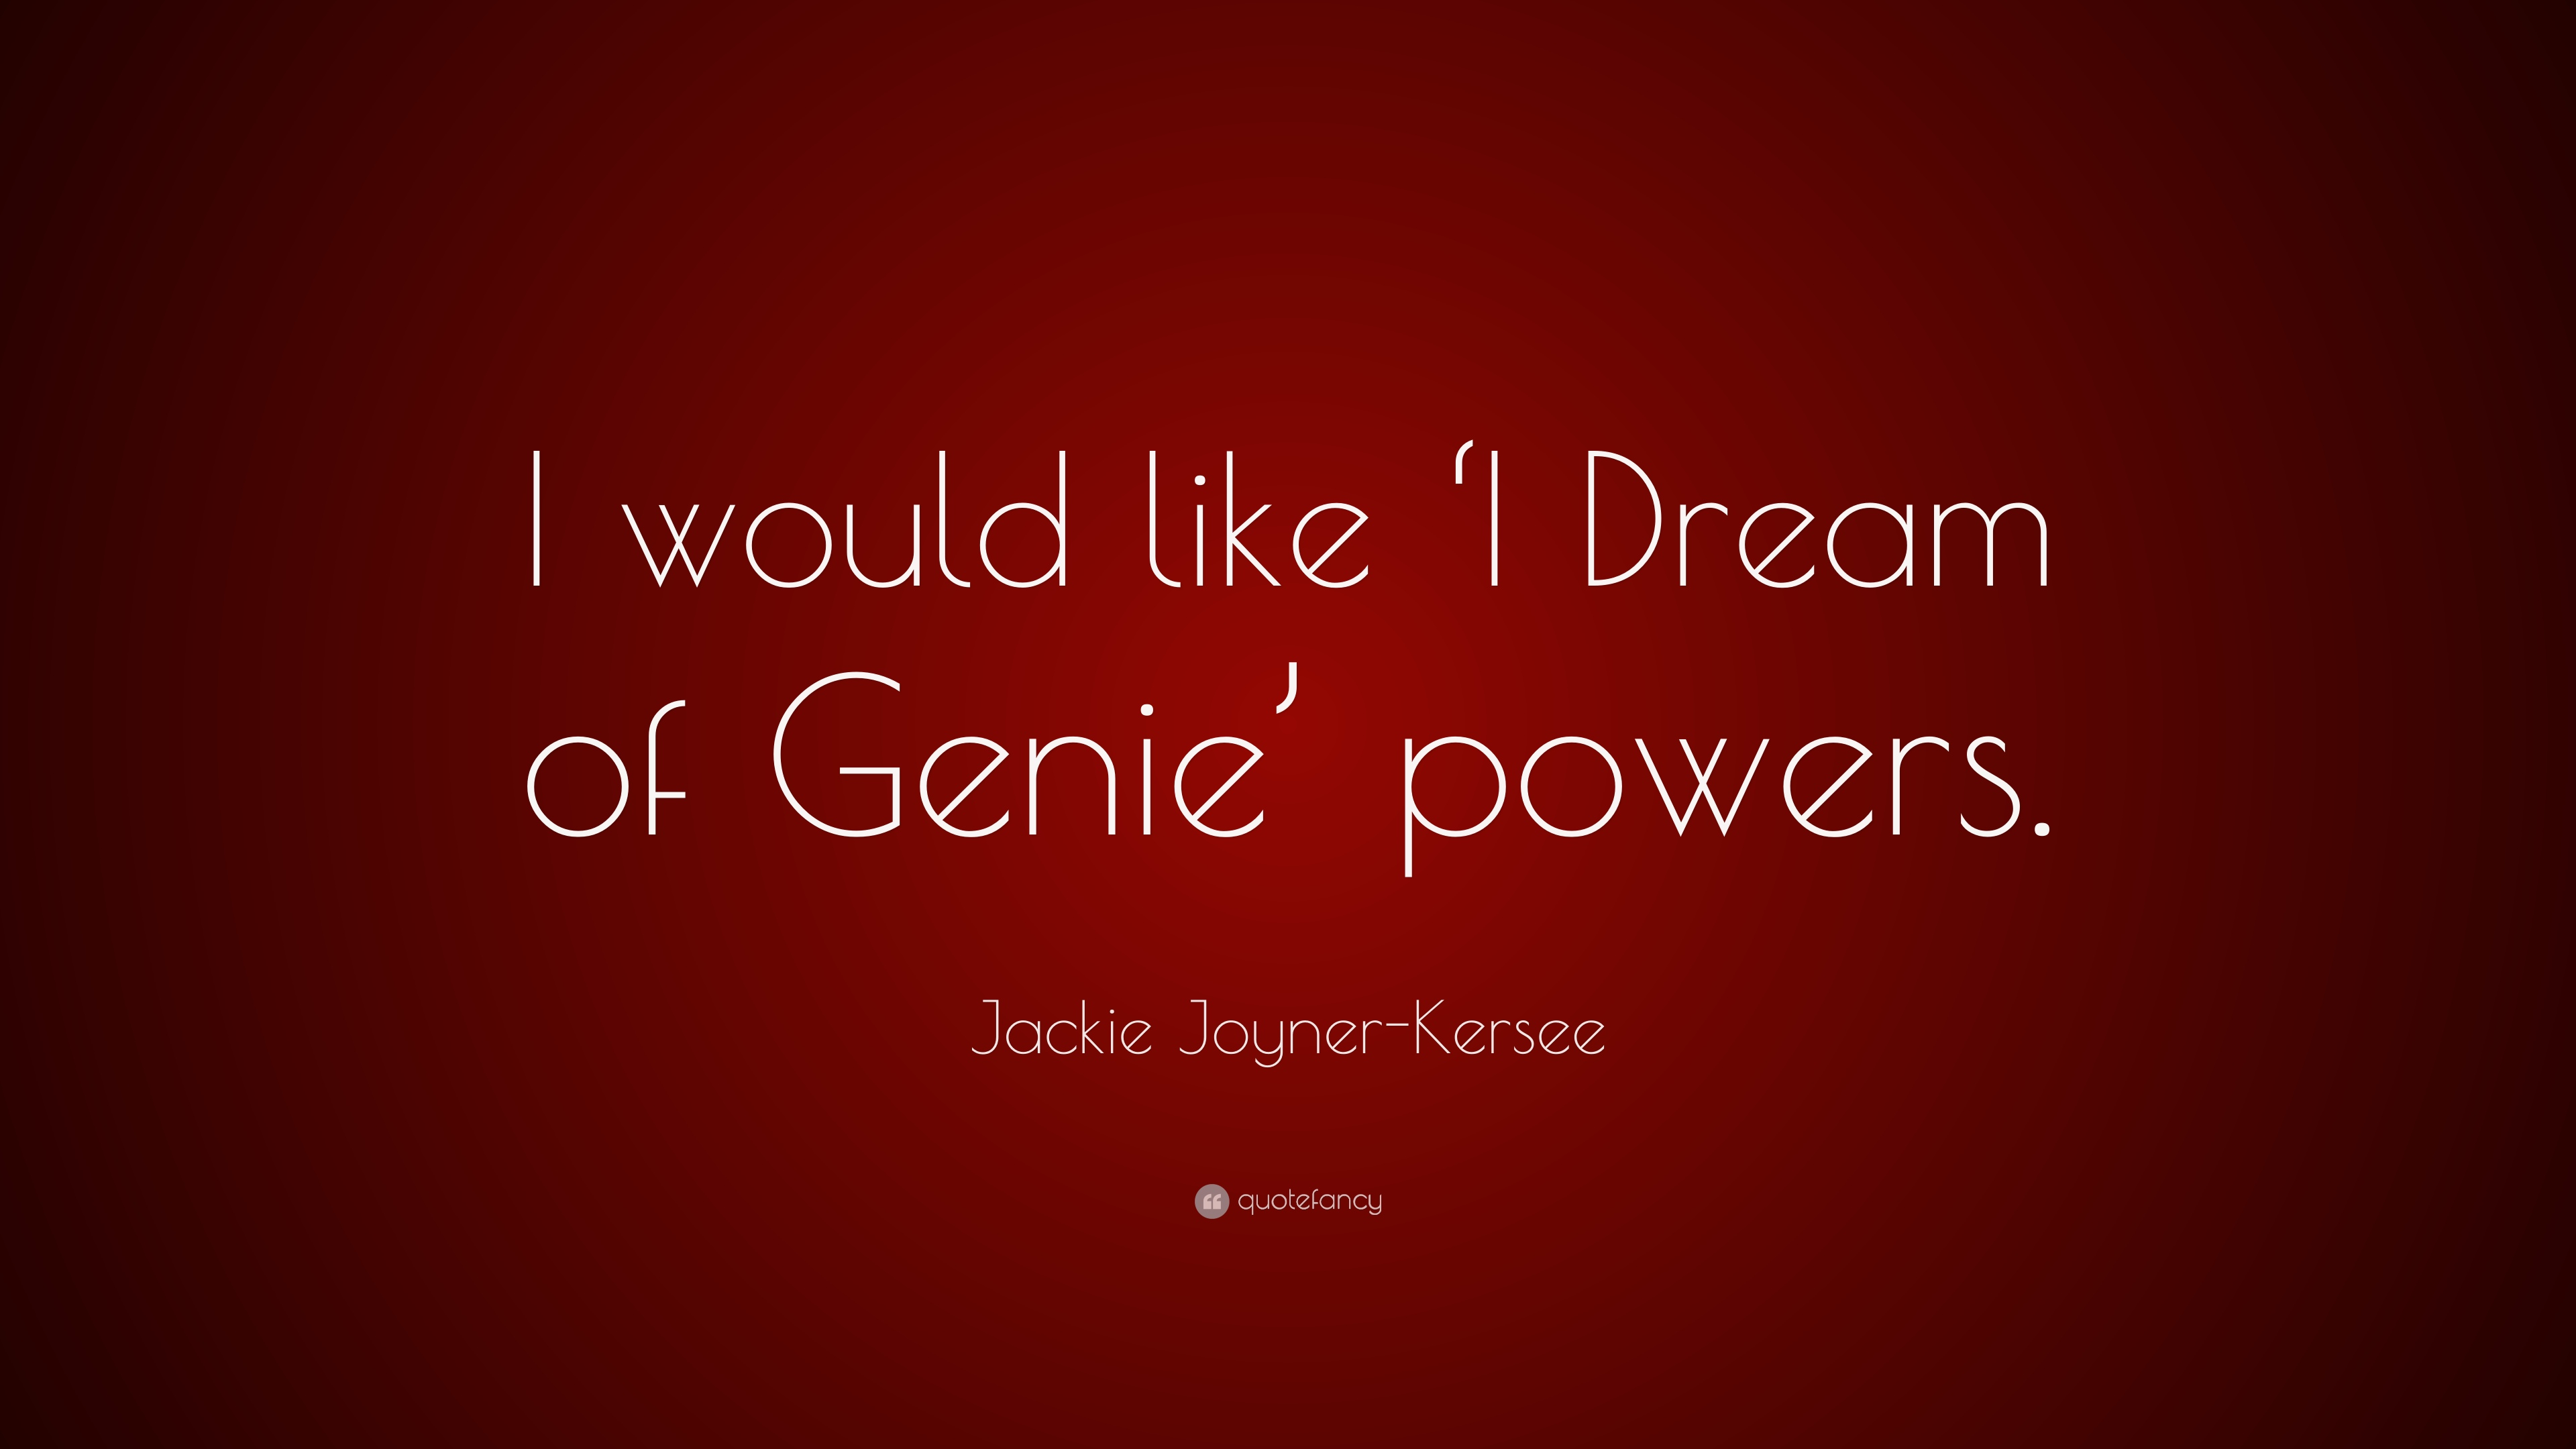 Jackie Joyner Kersee Quote I Would Like I Dream Of Genie